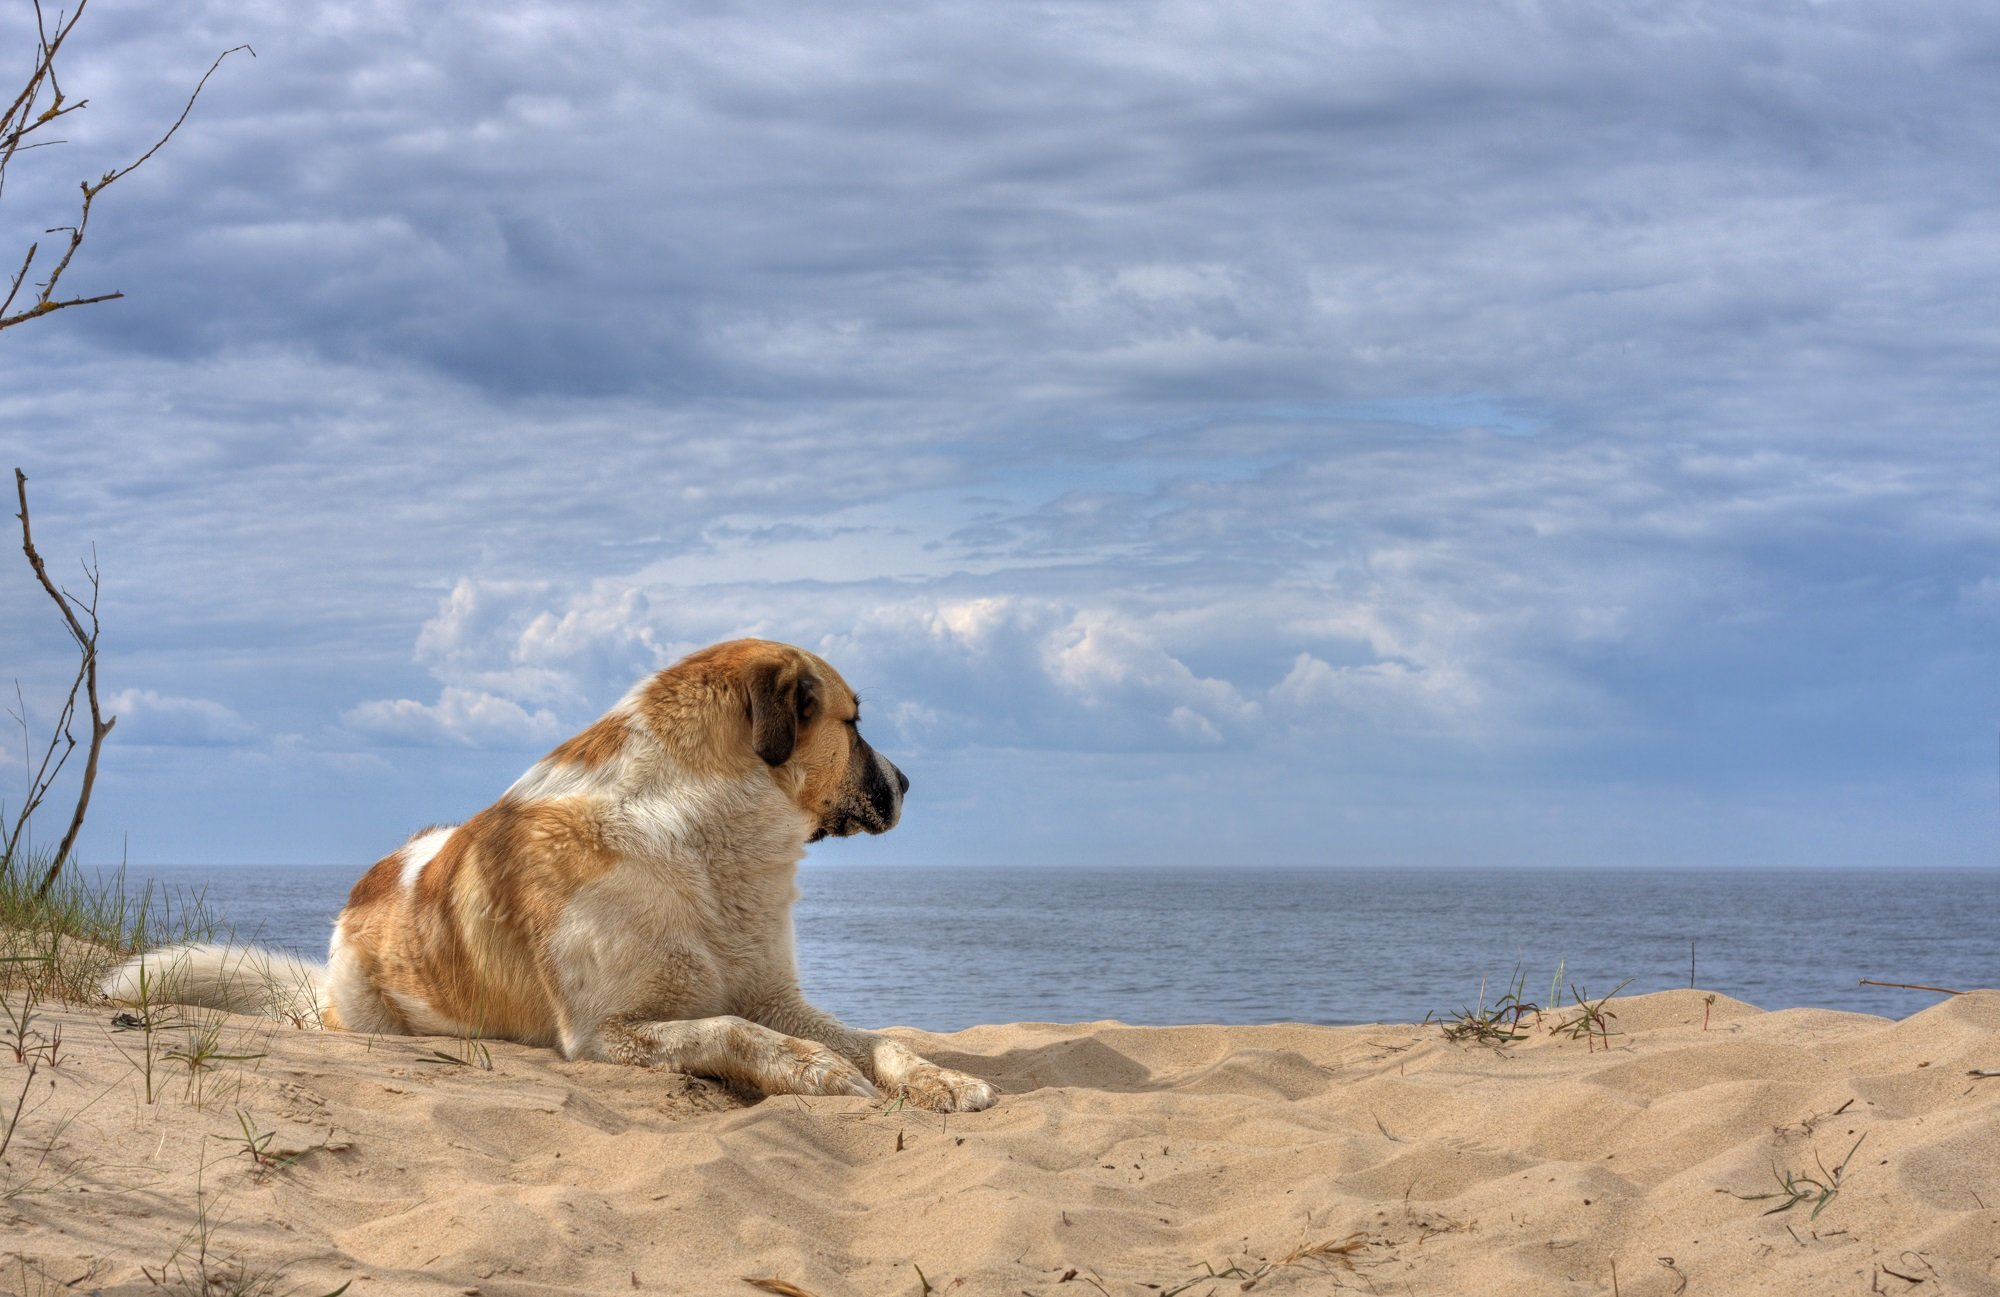 saint-bernard-dog-on-beach_12417292